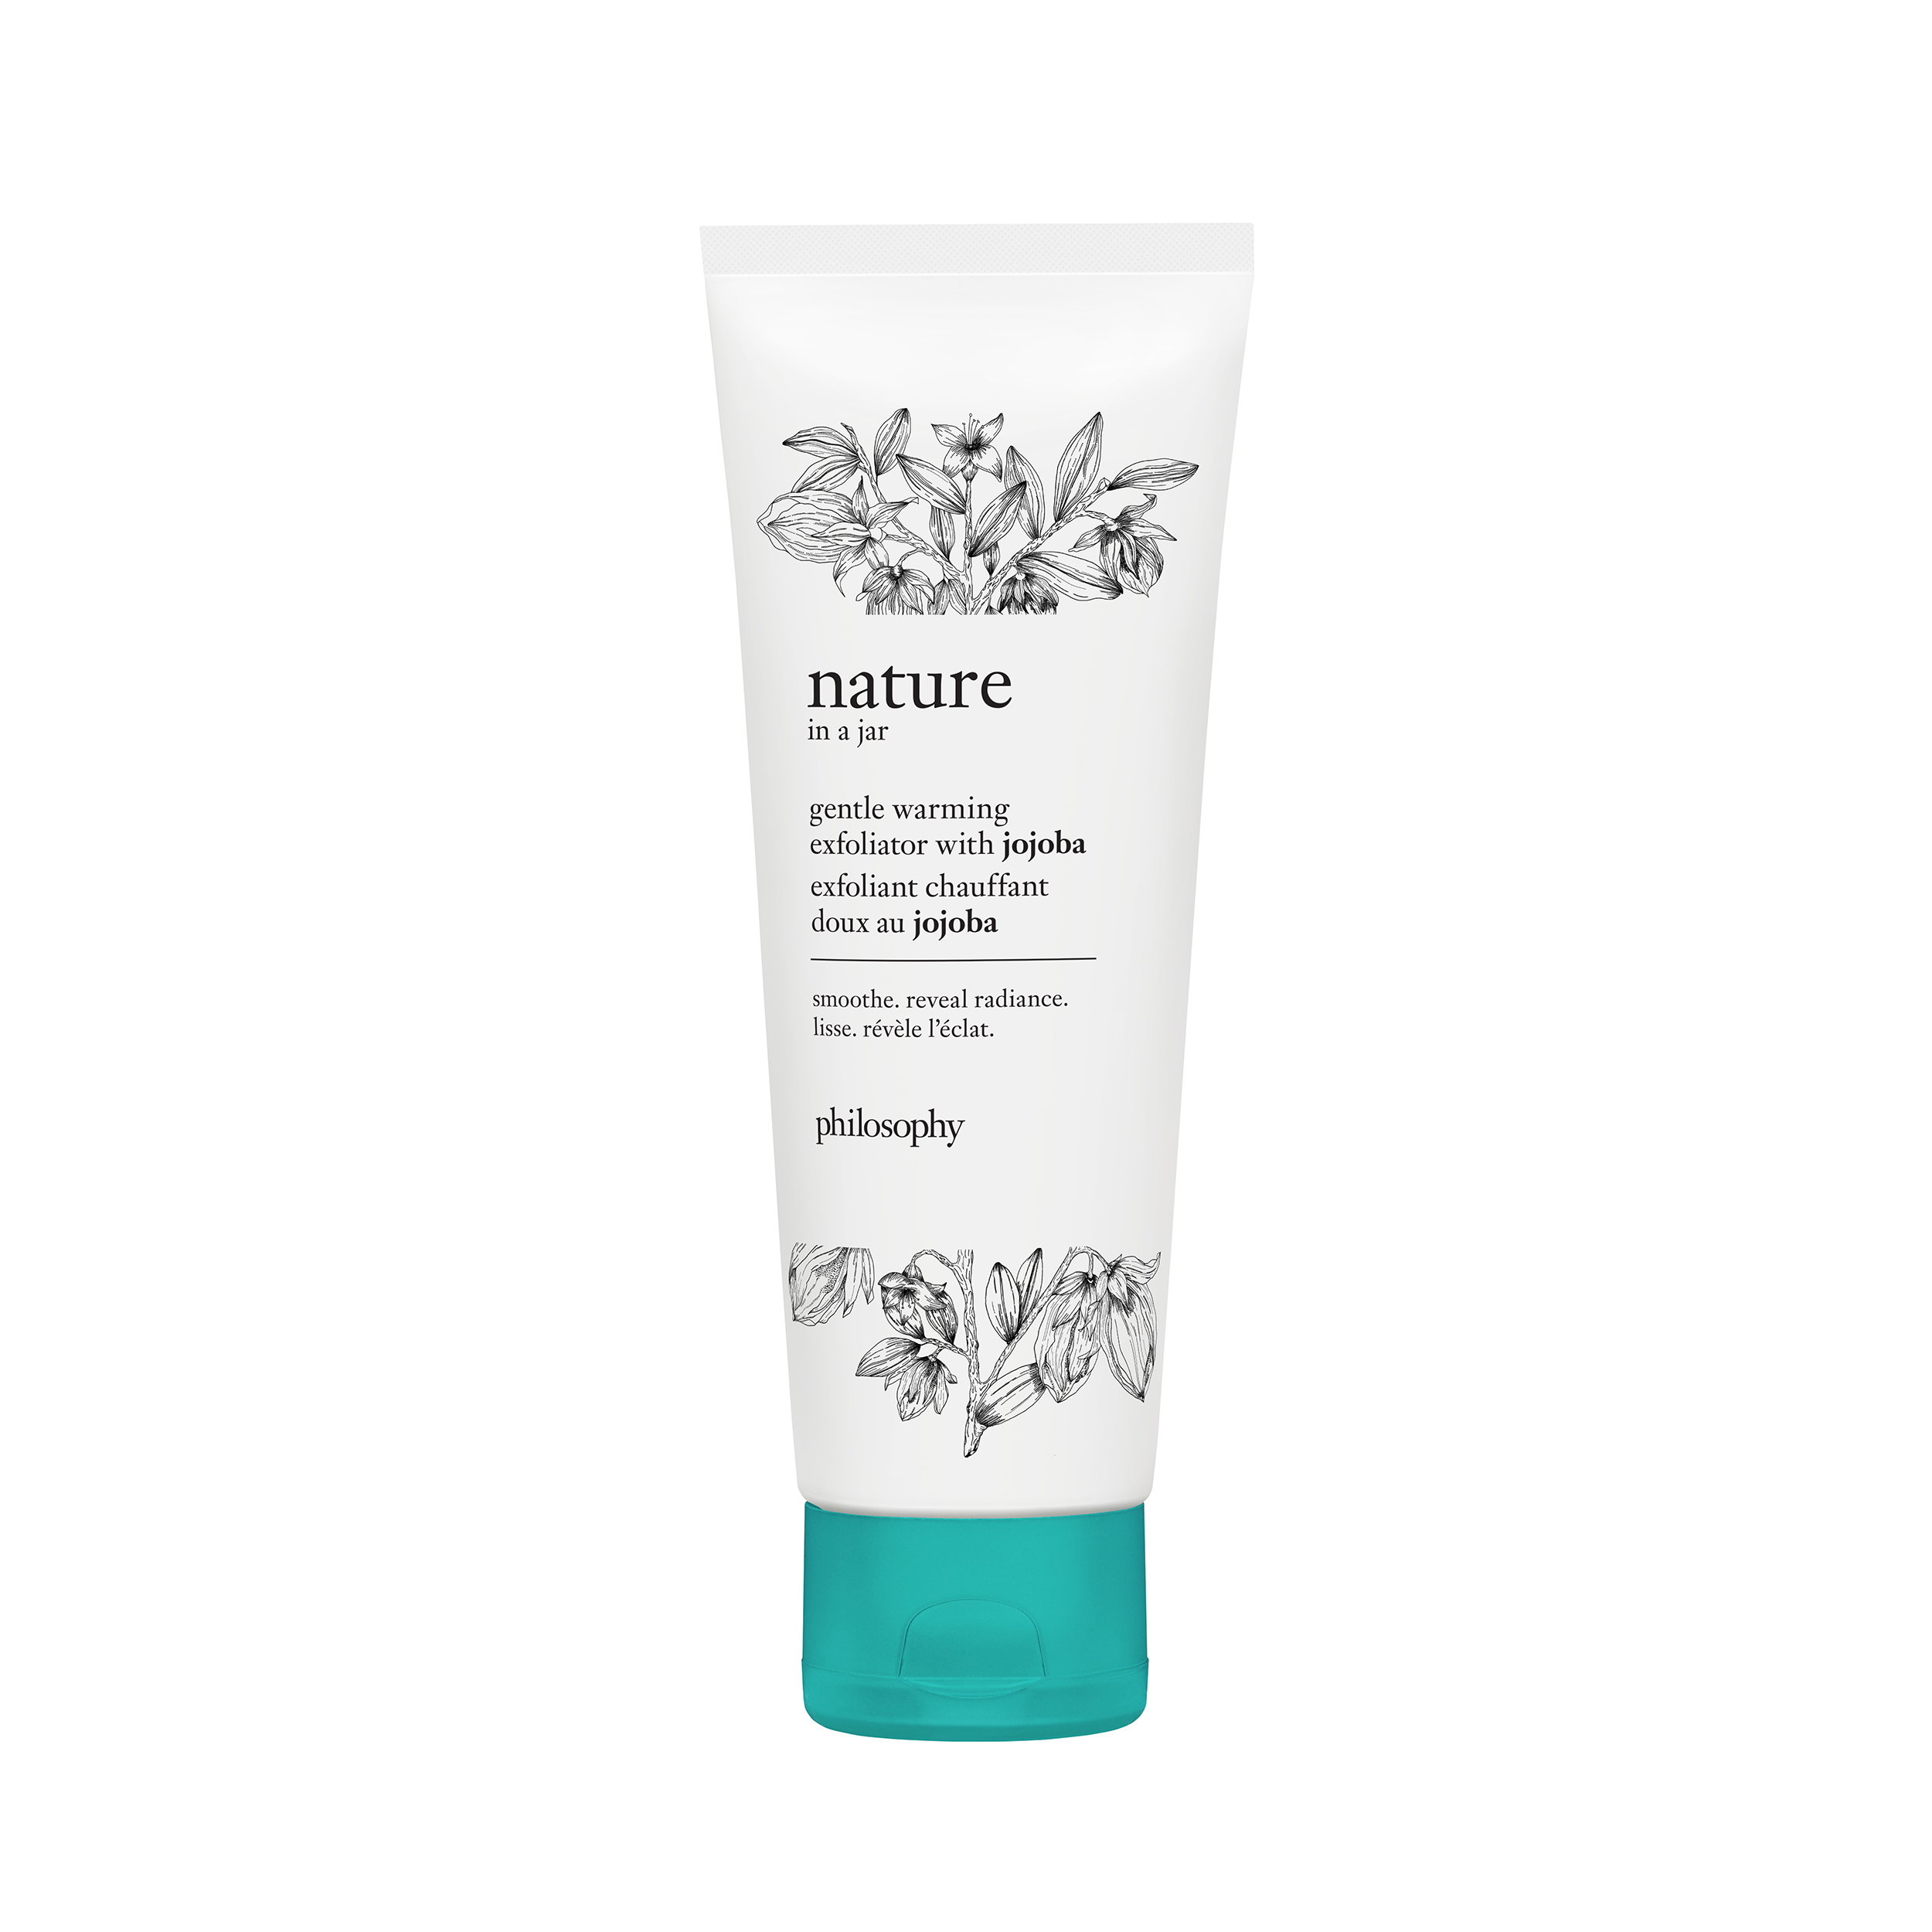 nature in a jar gentle warming exfoliator with jojoba